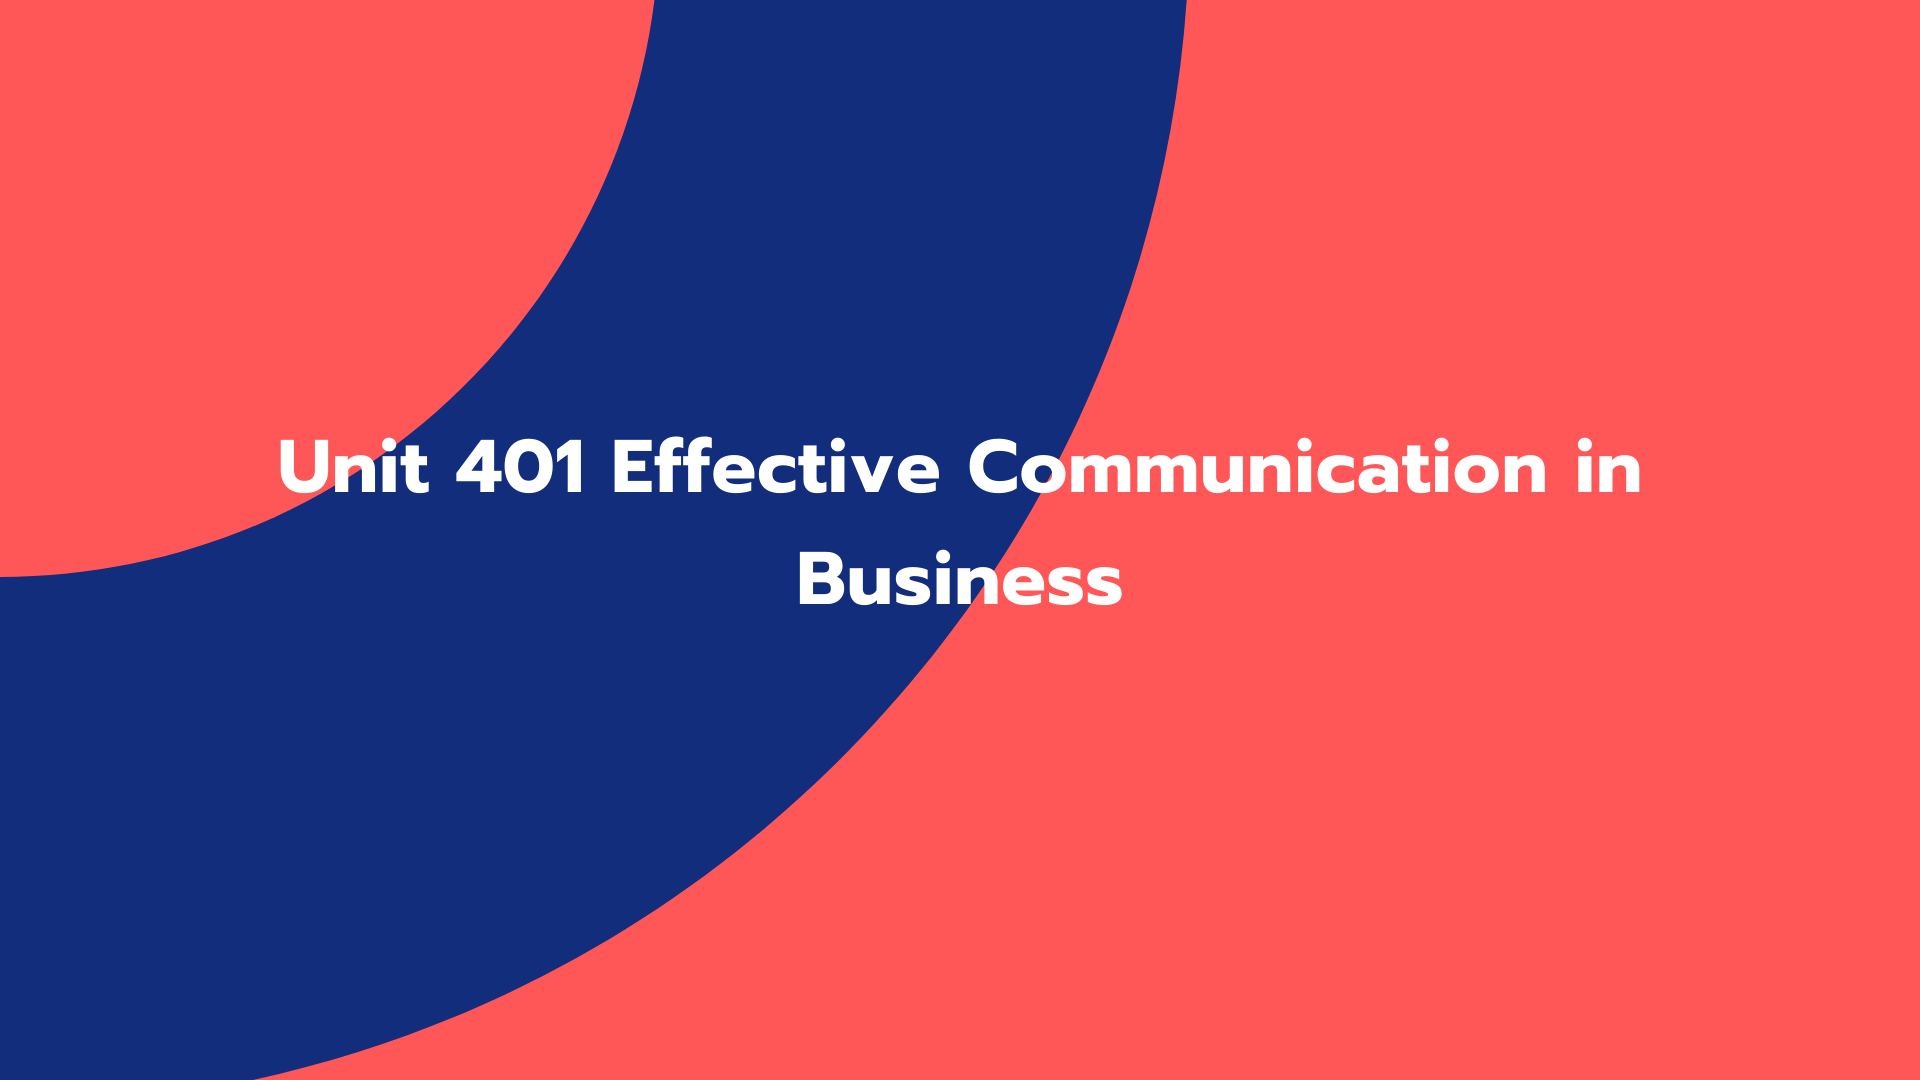 Unit 401 Effective Communication in Business